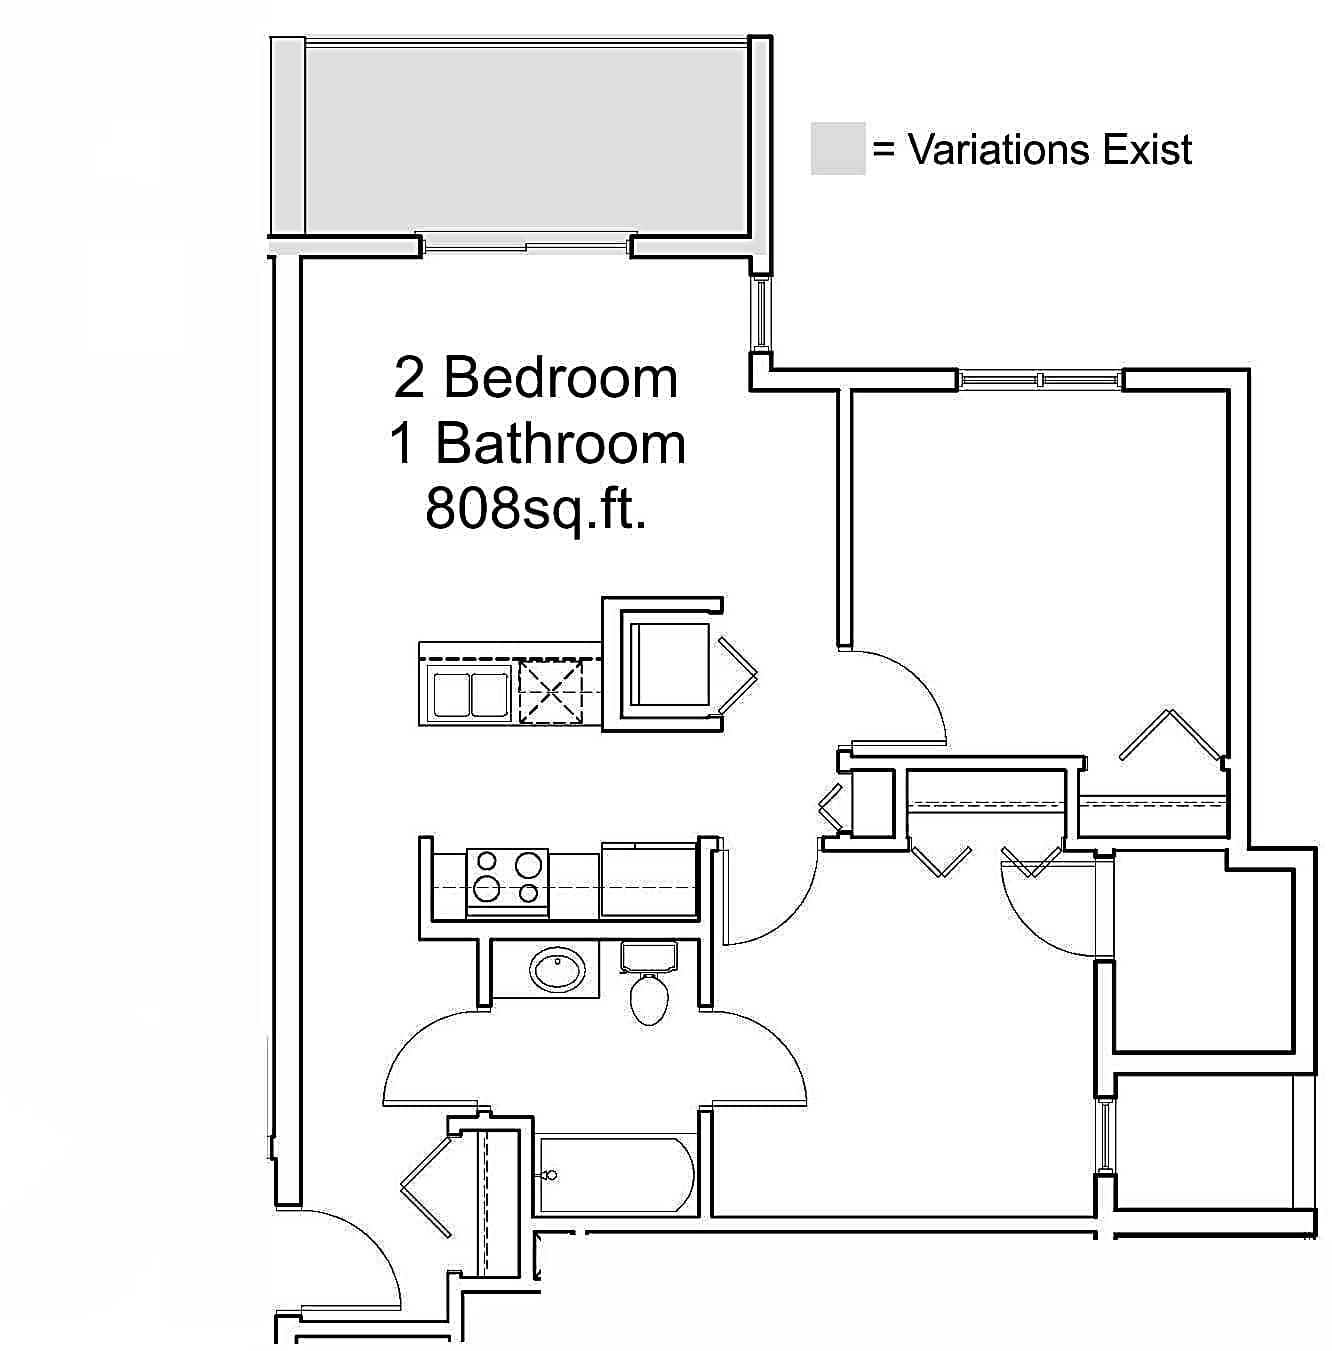 808sq.ft. 2 Bedroom 1 Bathroom